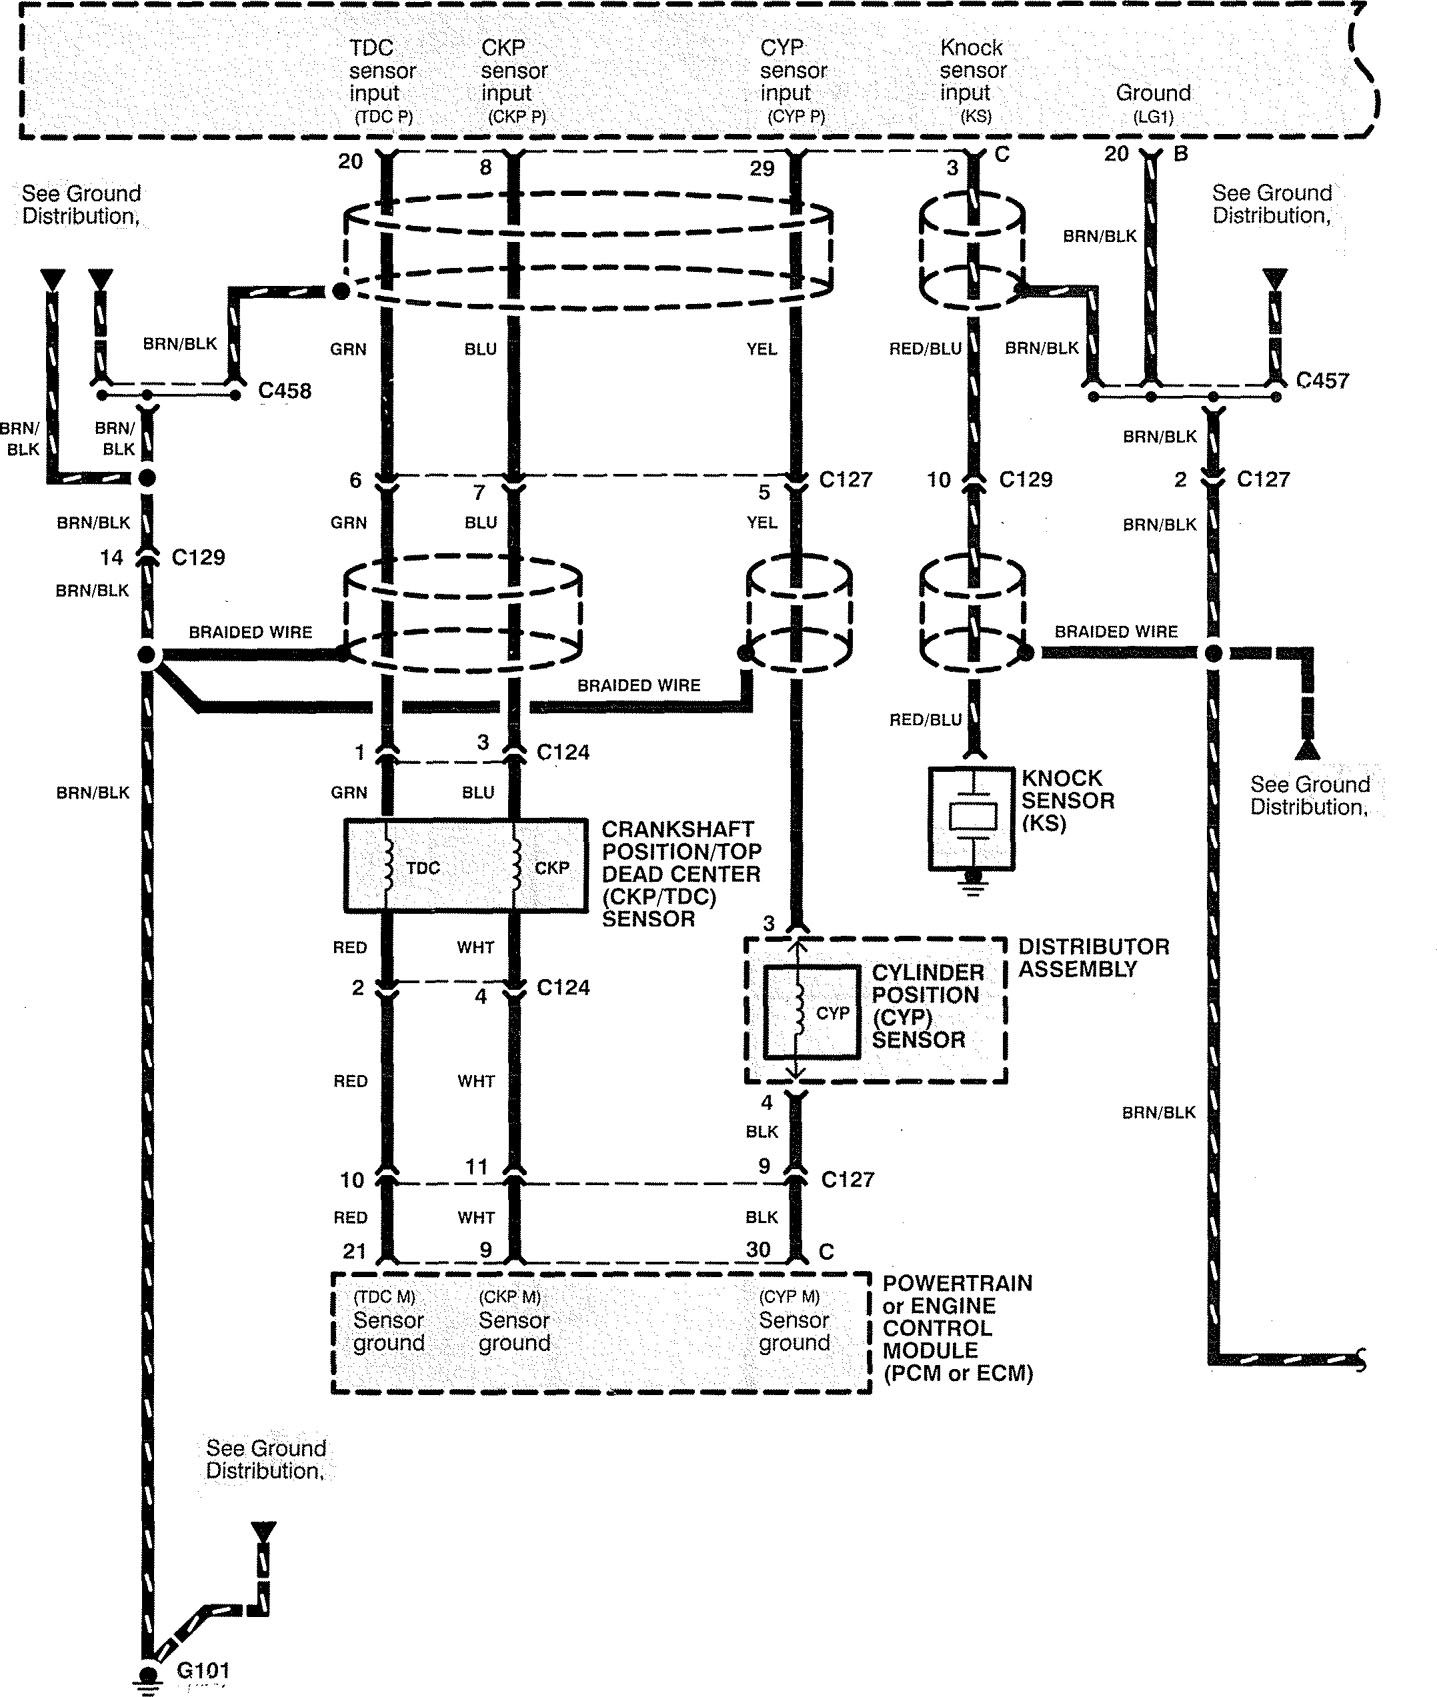 1990 Mustang Fuel Injector Schematic | Wiring Diagram Database on